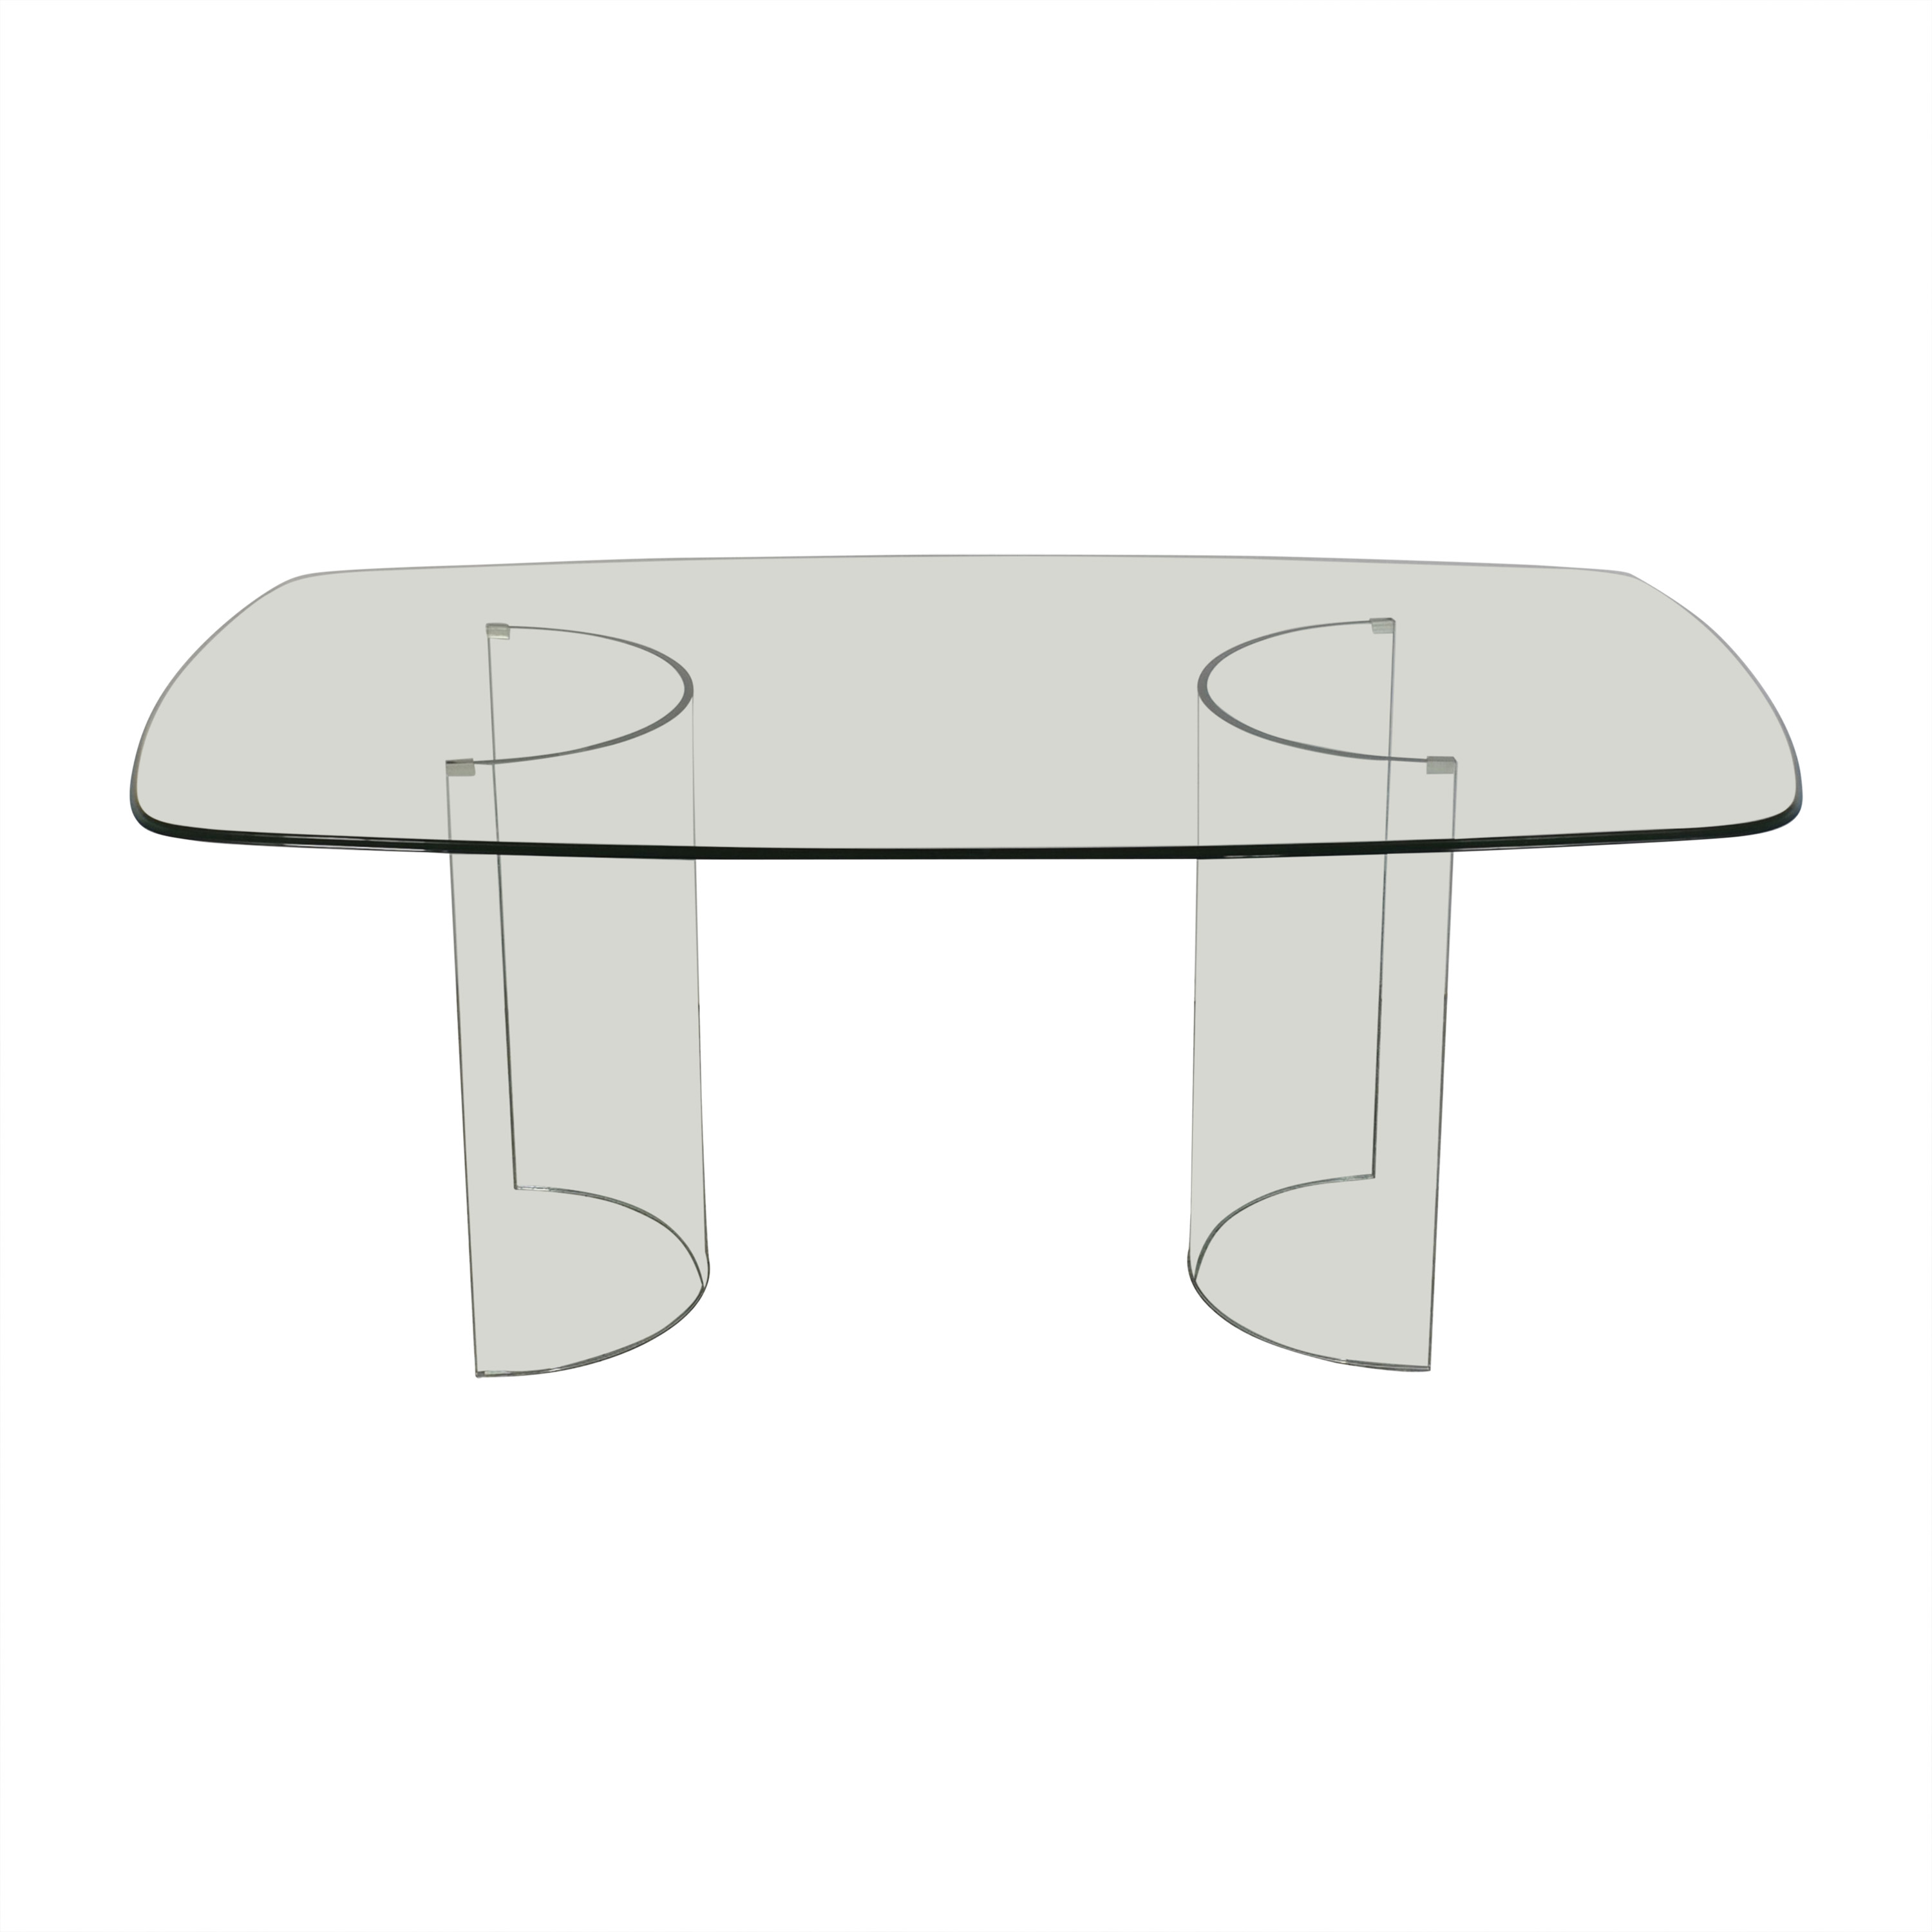 Raymour & Flanigan Raymour & Flanigan Beveled Tempered Glass Dining Table price